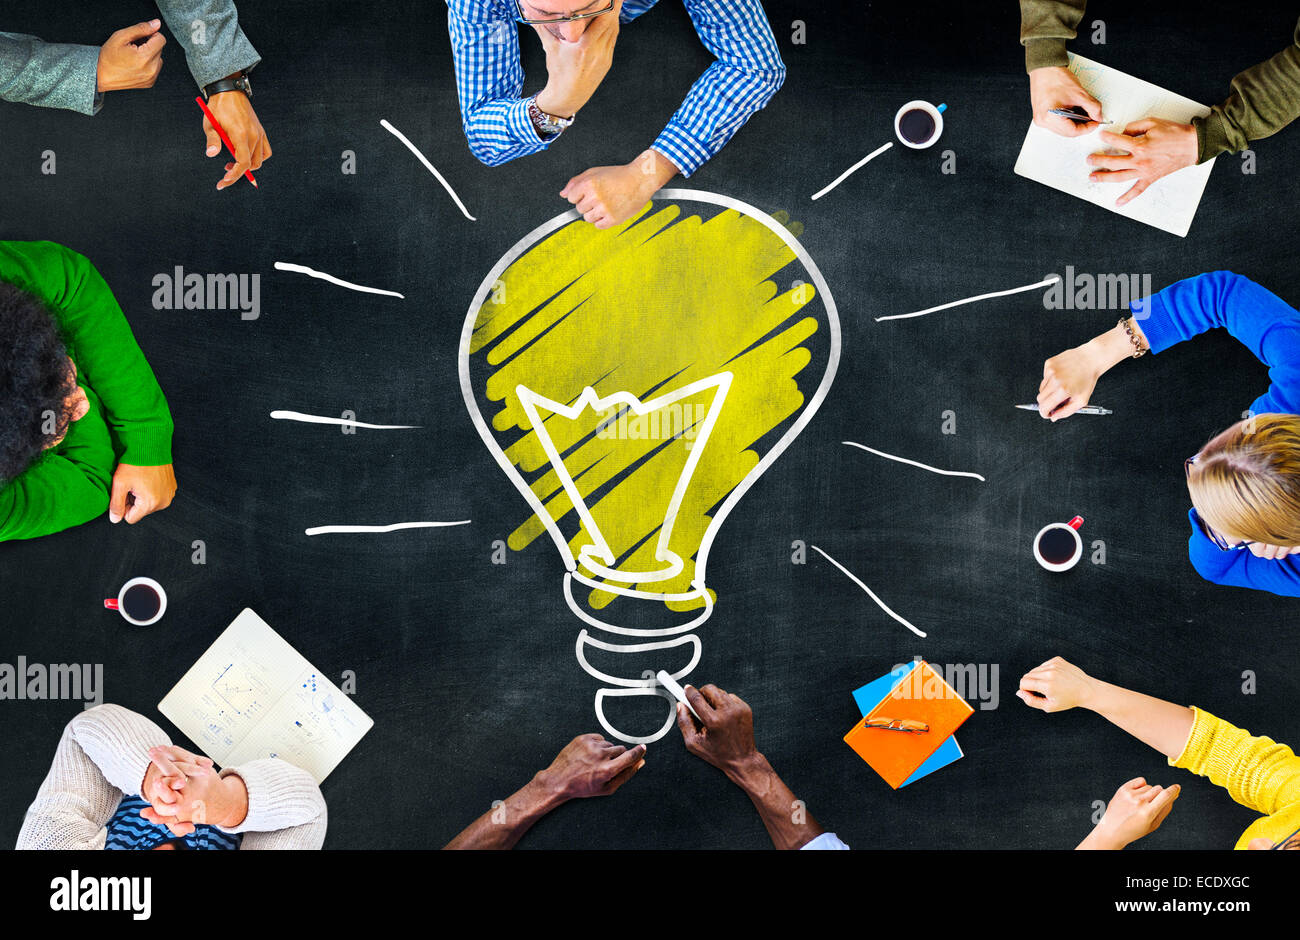 Ideas Thoughts Knowledge Intelligence Learning Thoughts Meeting Concept - Stock Image